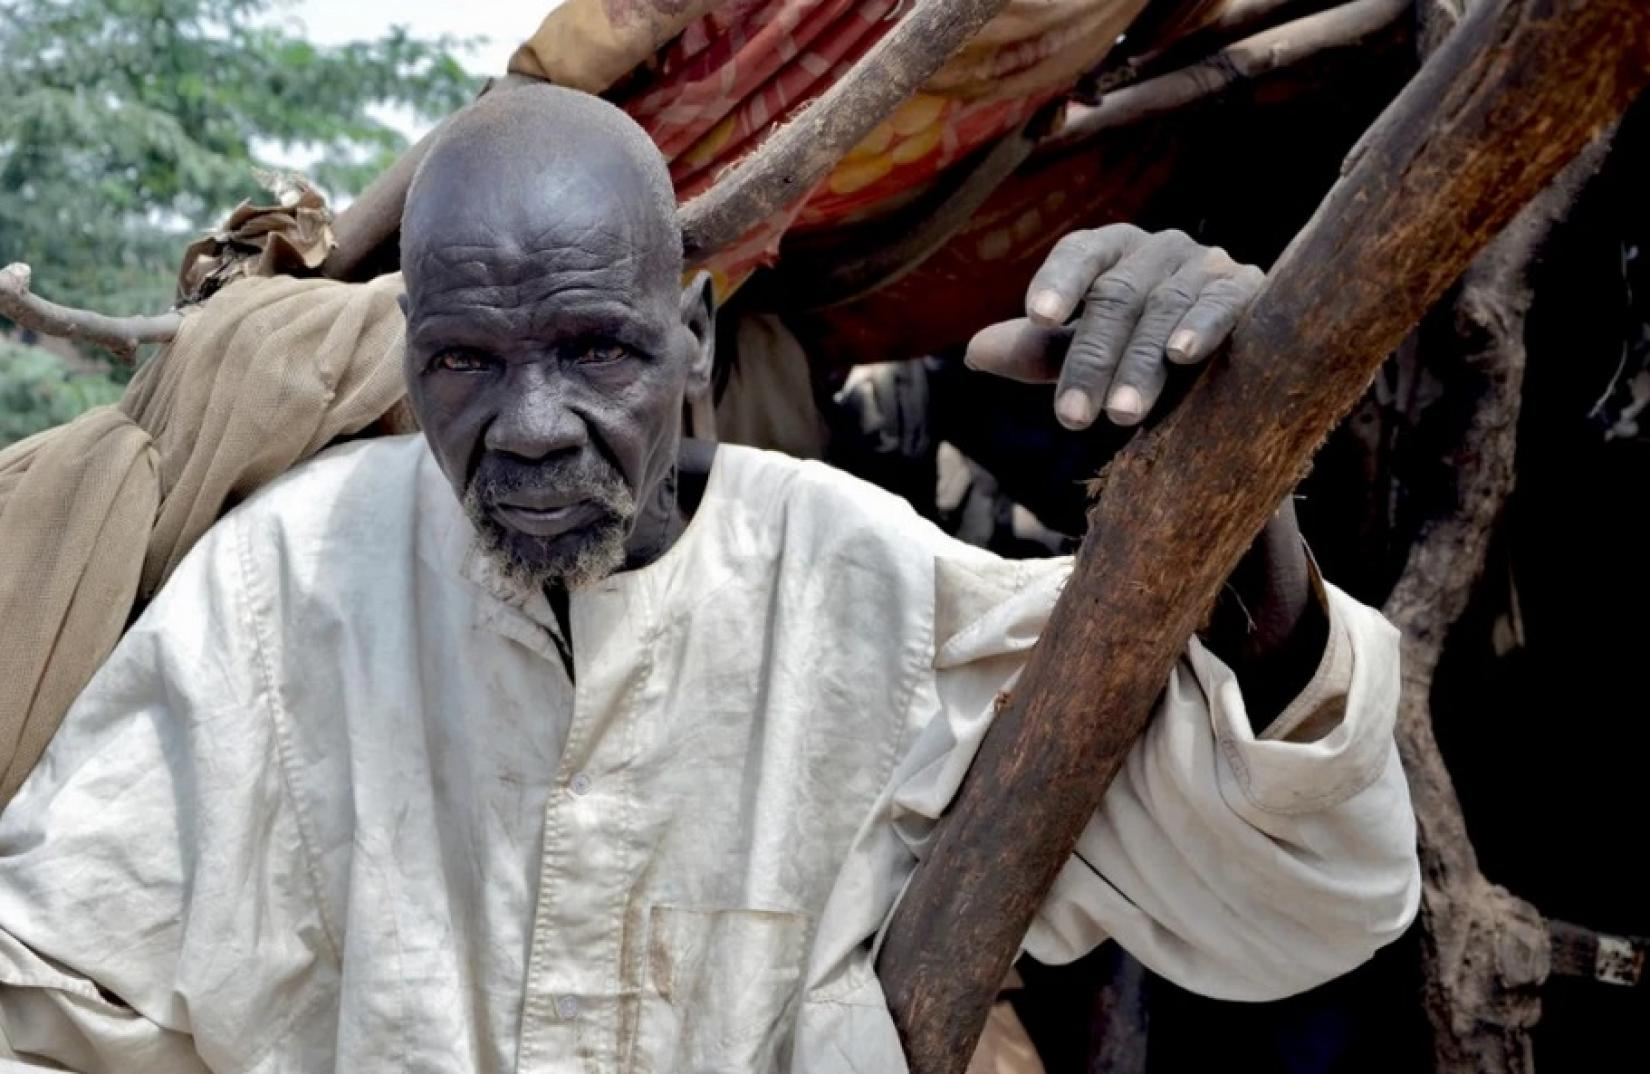 South Sudanese refugee, Bak, 80, sits in his shelter that was damaged by massive flooding in Sharq Al-Nile, Sudan.   © UNHCR/Roland Schönbauer